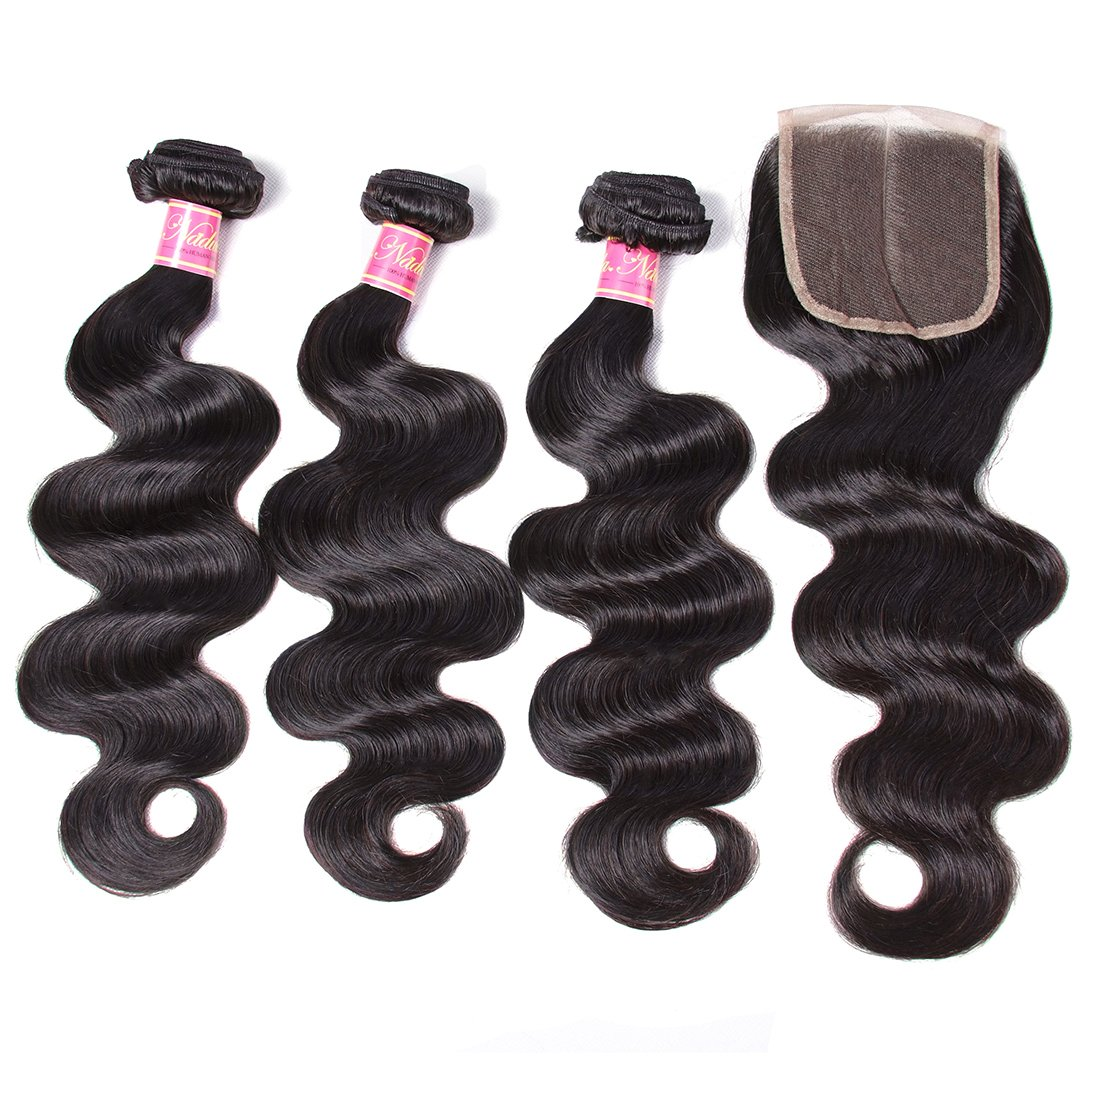 Nadula 6A Gorgeous Body Wave Brazilian Virgin Hair Free Part Lace Closure with 3 Bundles Unprocessed Remy Human Hair Weave Extensions Natural Color (18 20 22&16closure) by Nadula (Image #4)